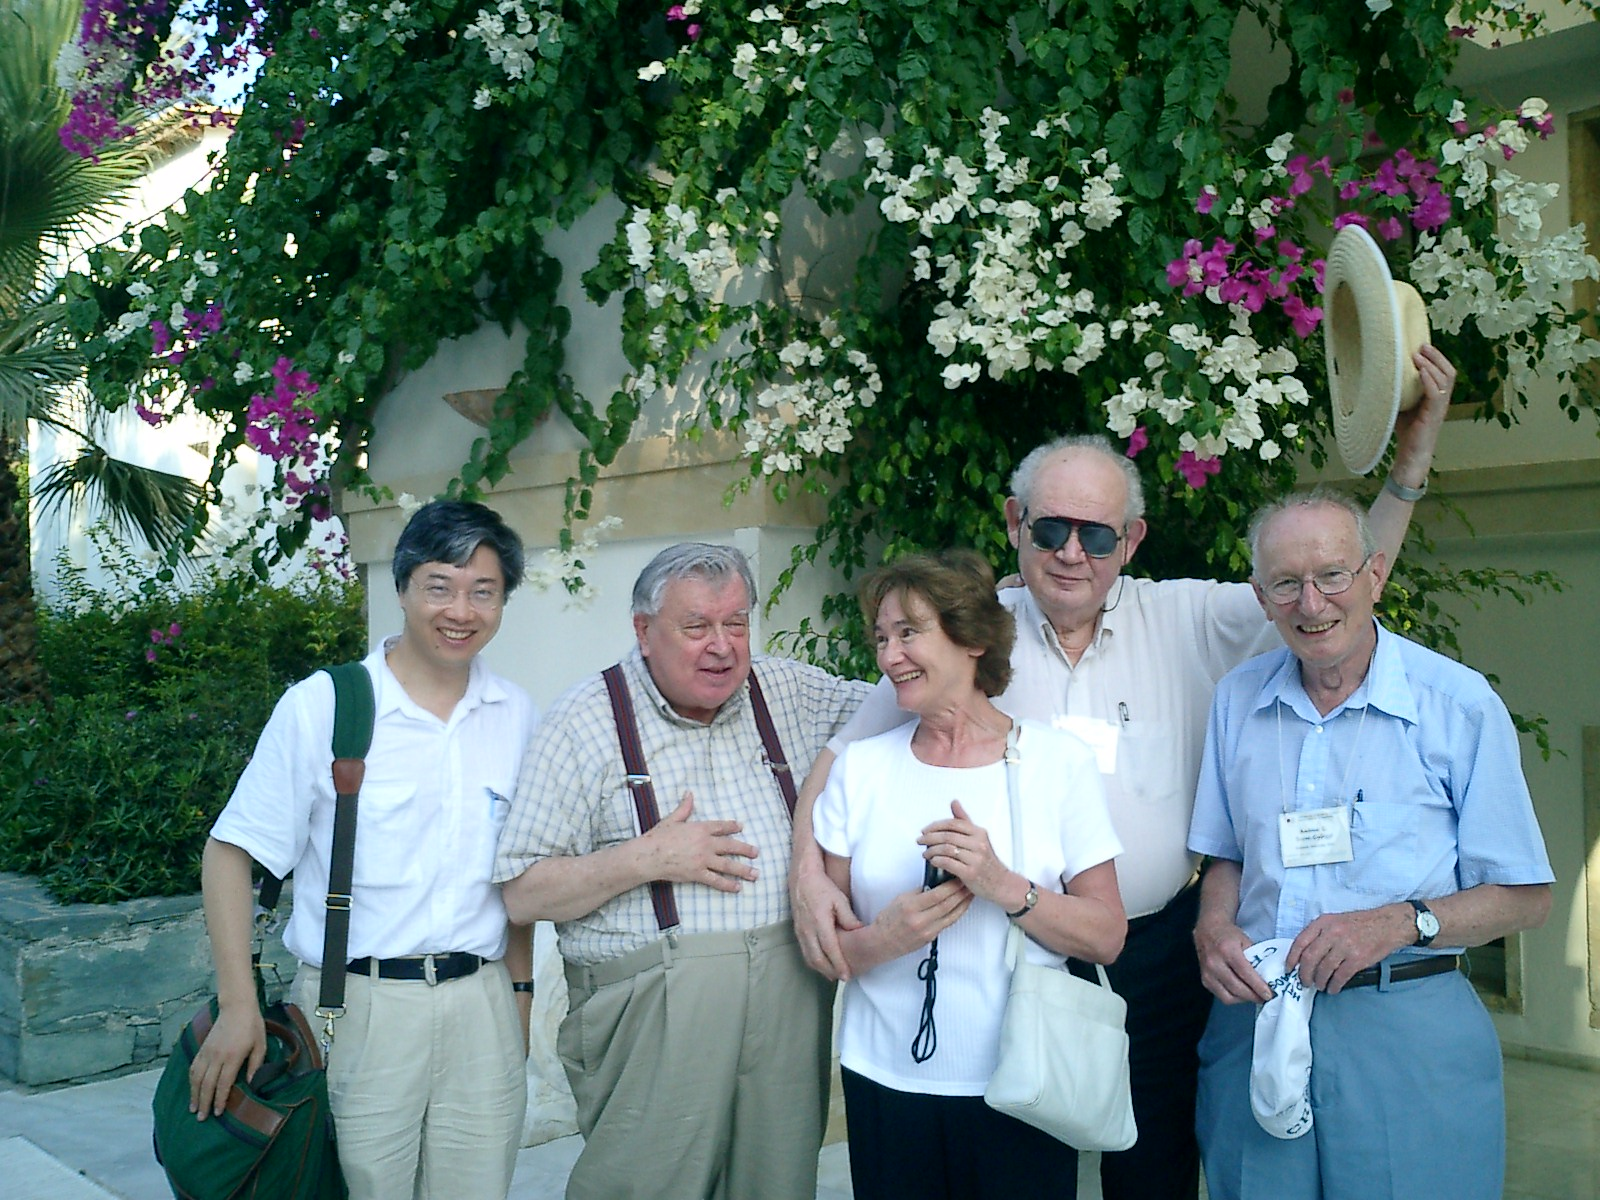 With D. Carleton Gajdusek, Aliette and Benoit Mandelbrot, and Andrew Szent-Gyorgyi in 2003.